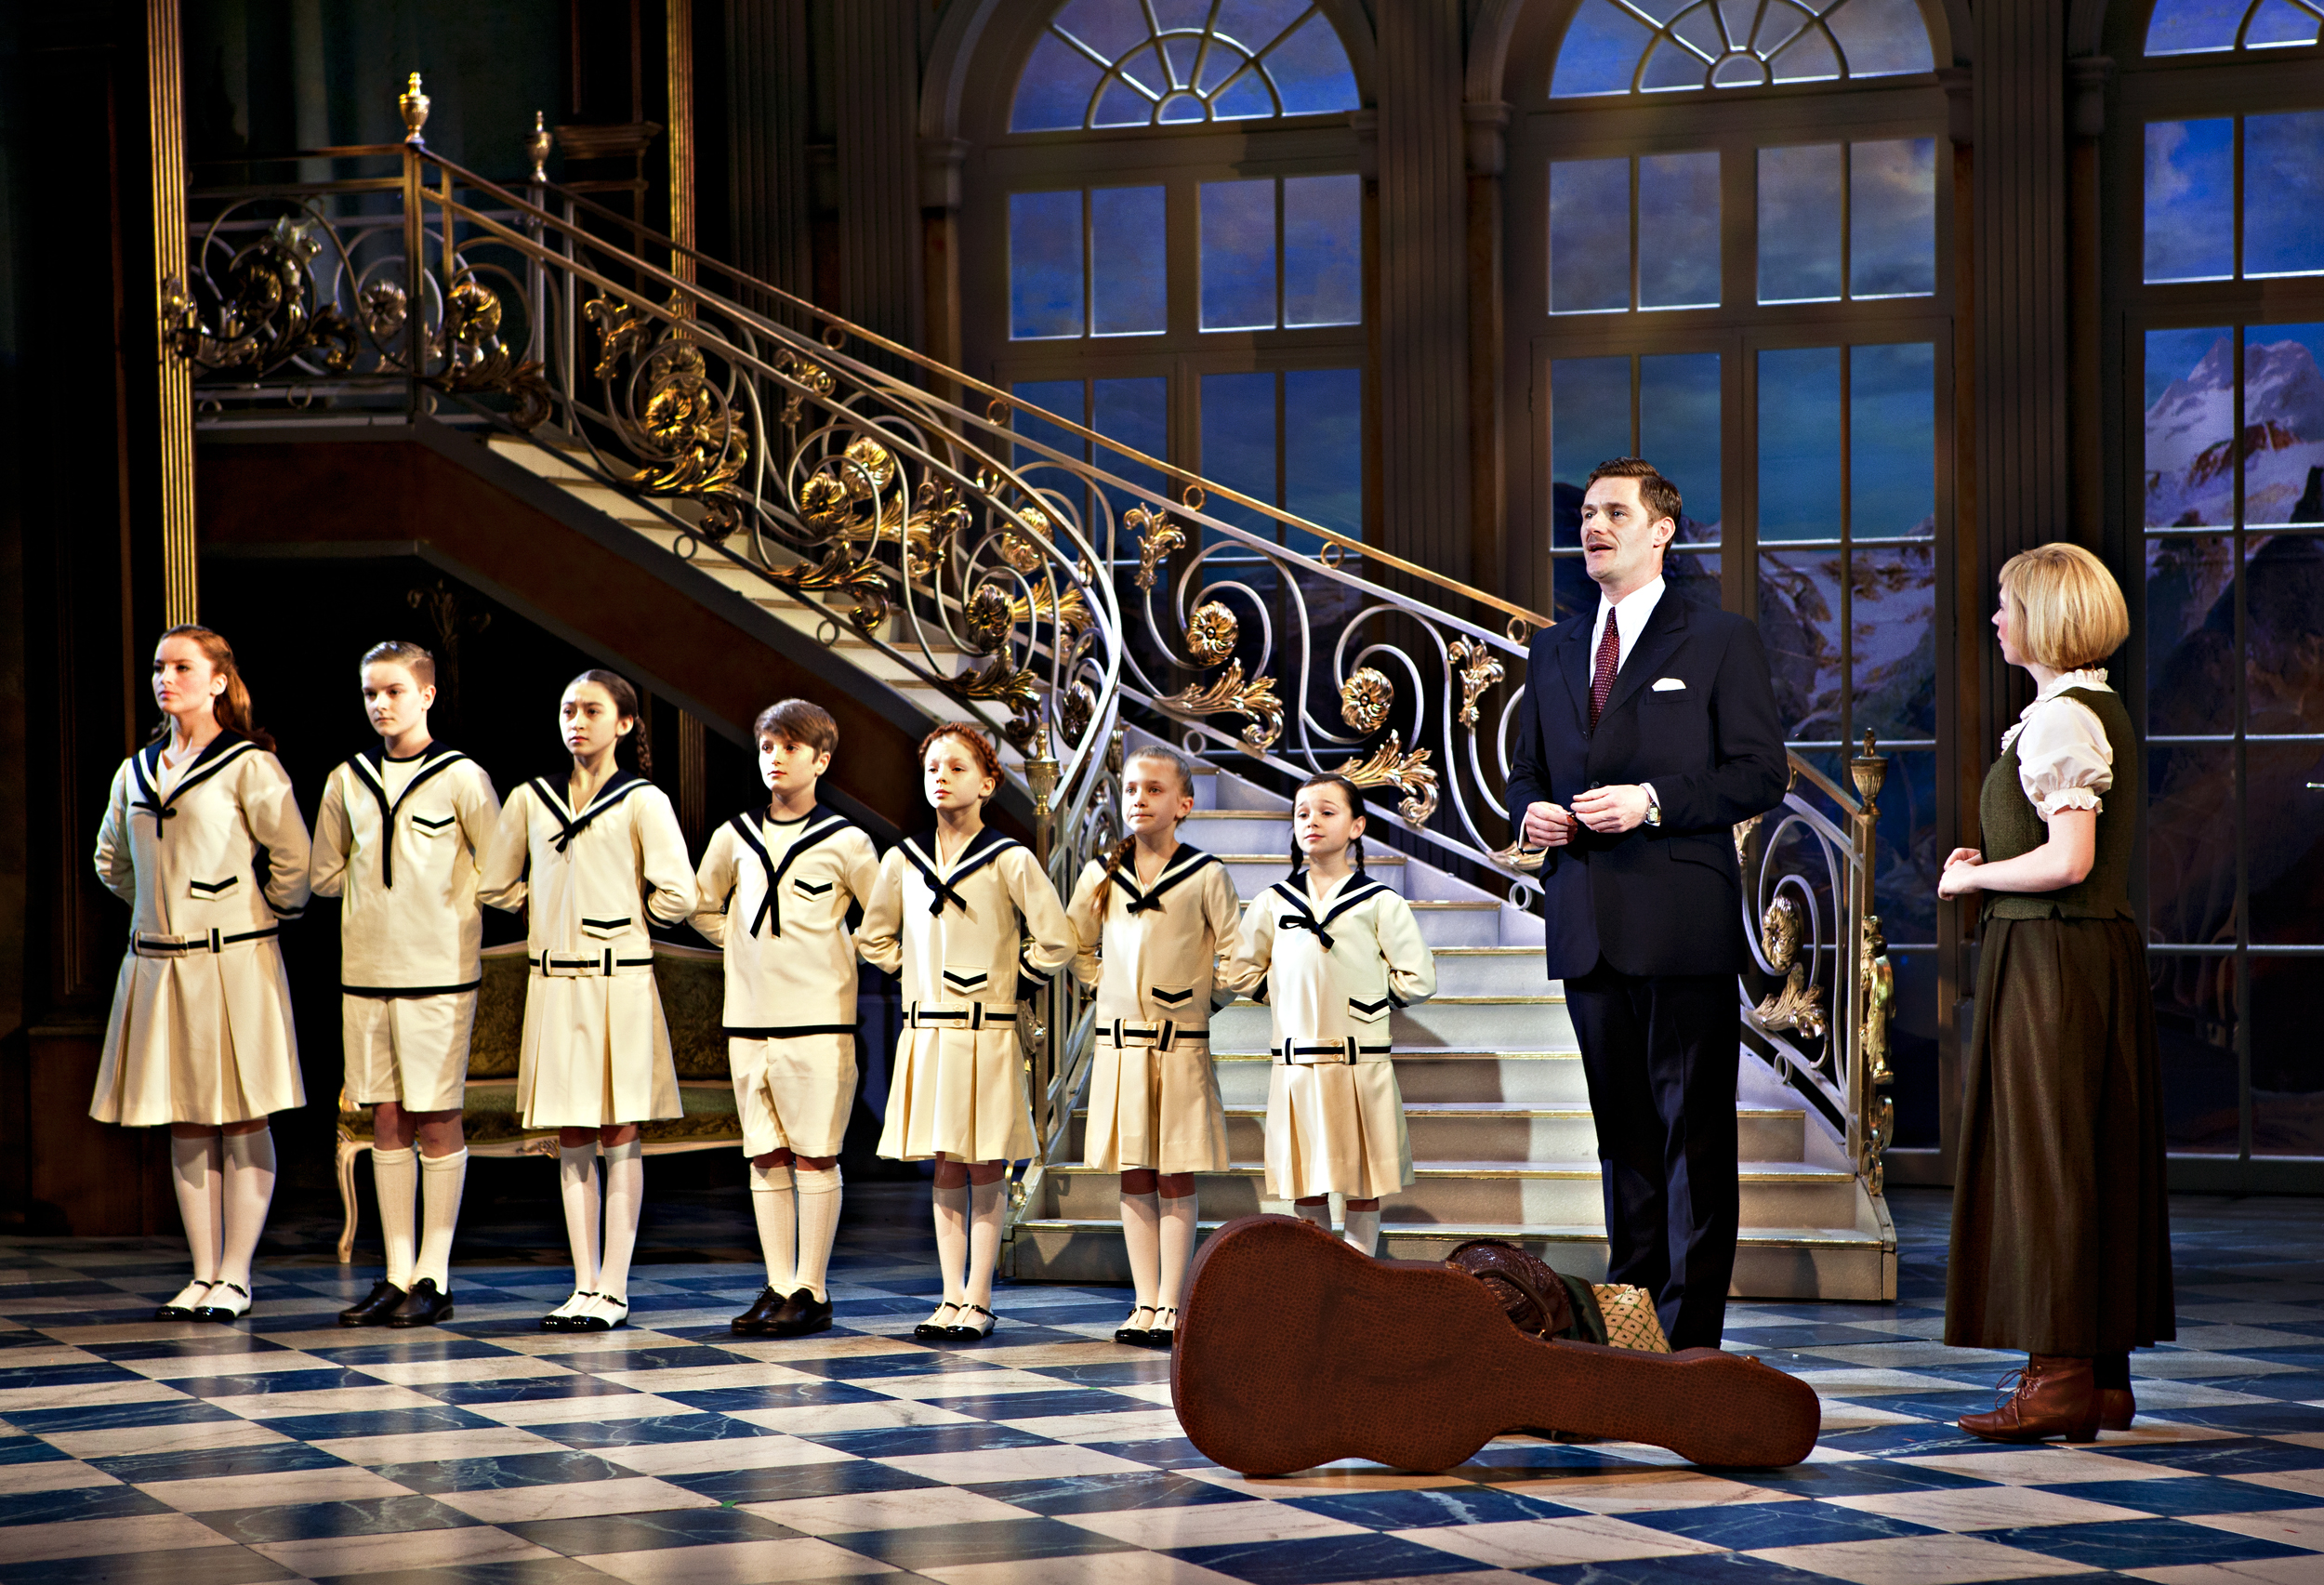 The Sound of Music. Steven Houghton as Captain Von Trapp, Danielle Hope as Maria. Photo by Pamela Raith.